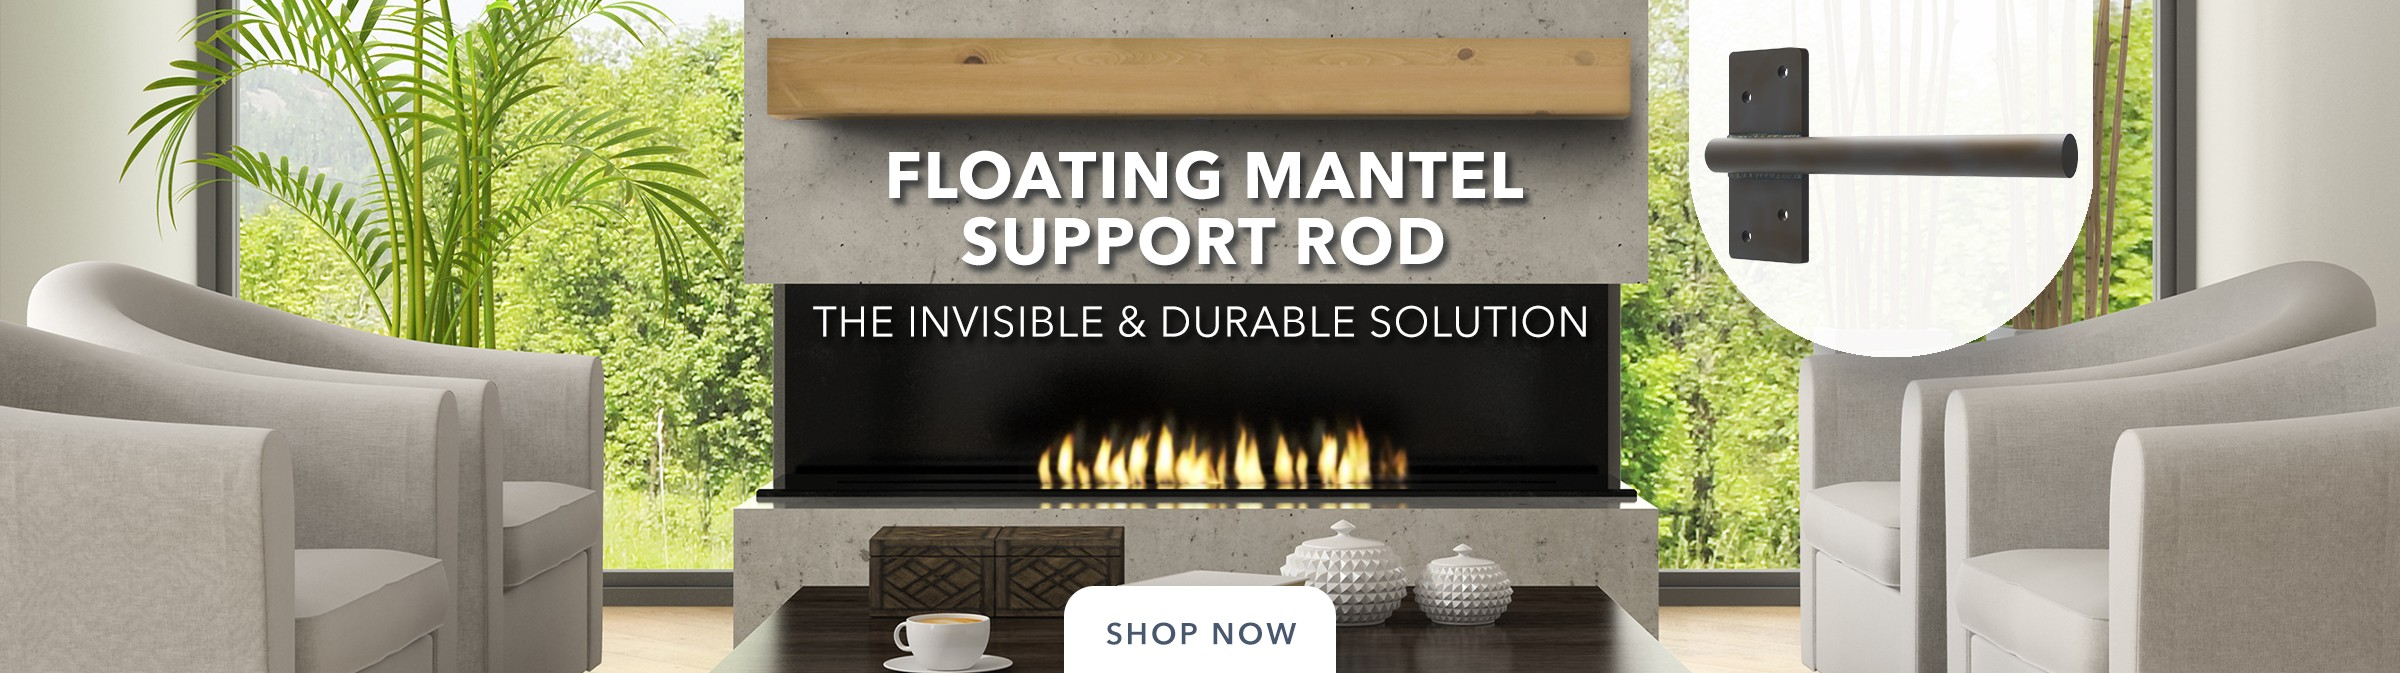 Floating Mantel Support Rod